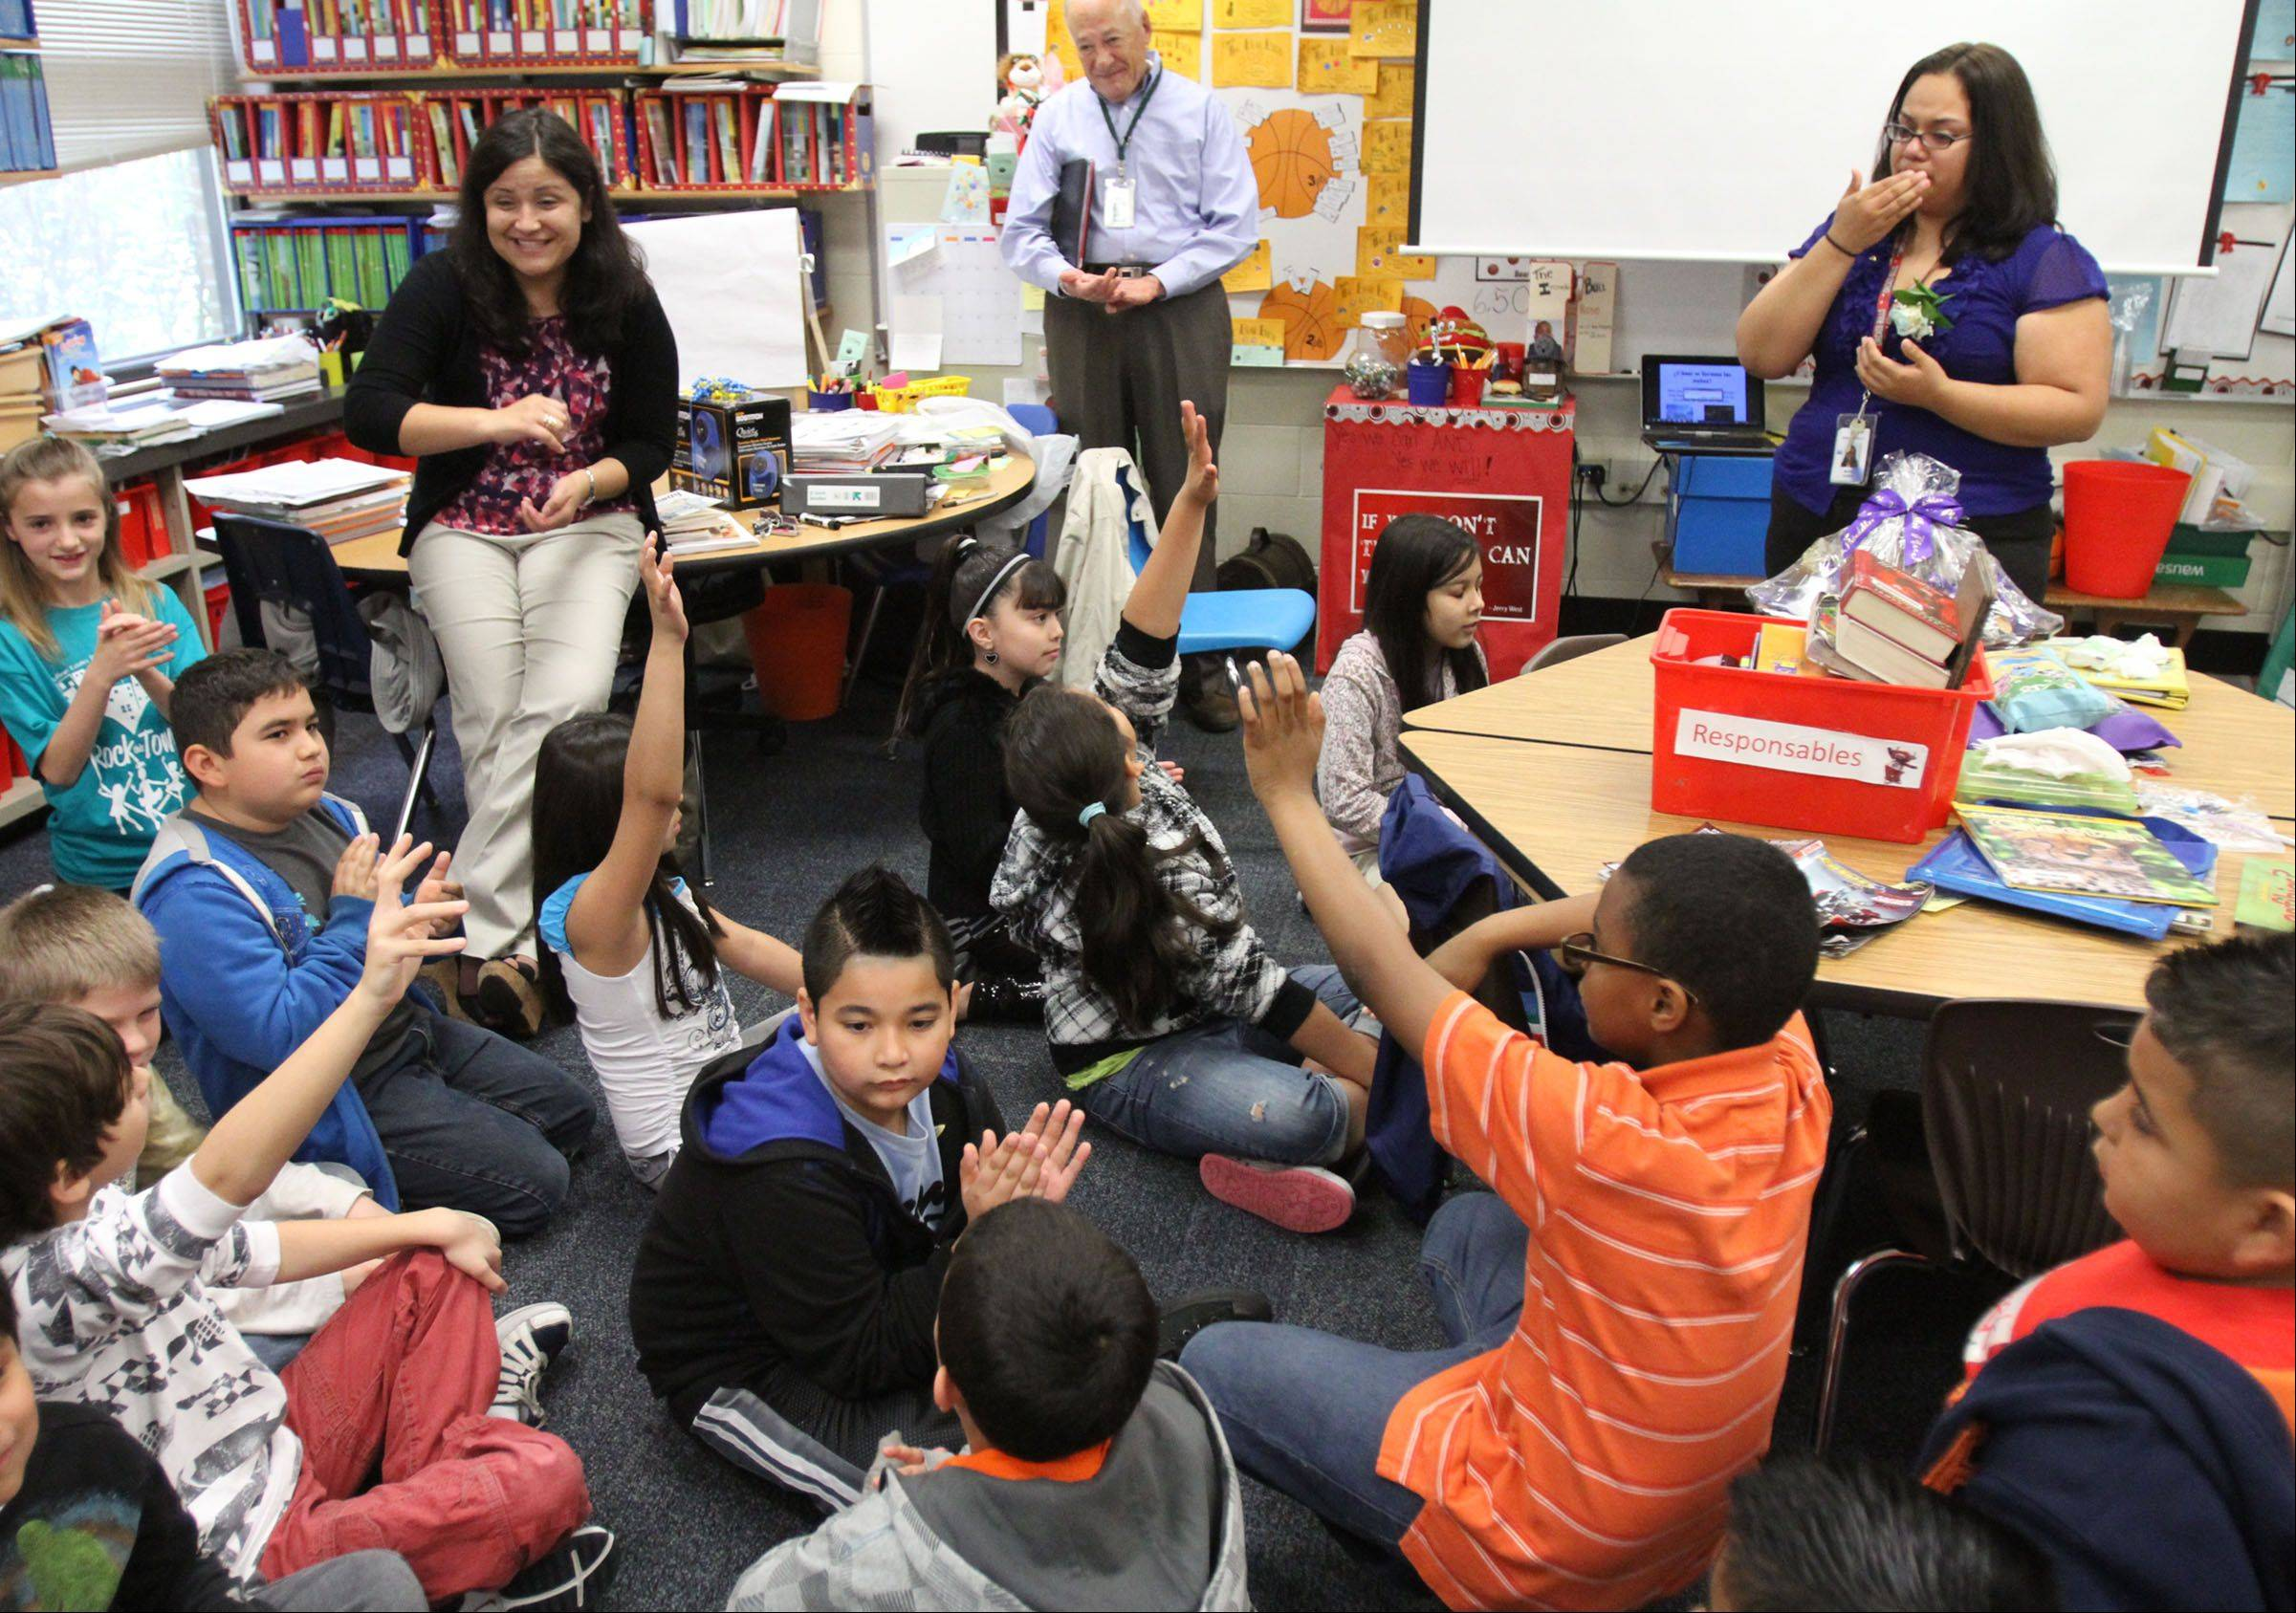 Maria Barba, bilingual teacher at Douglas MacArthur Elementary School in Hoffman Estates, listens to her students say why she is a great teacher after being surprised with a Golden Apple Award.